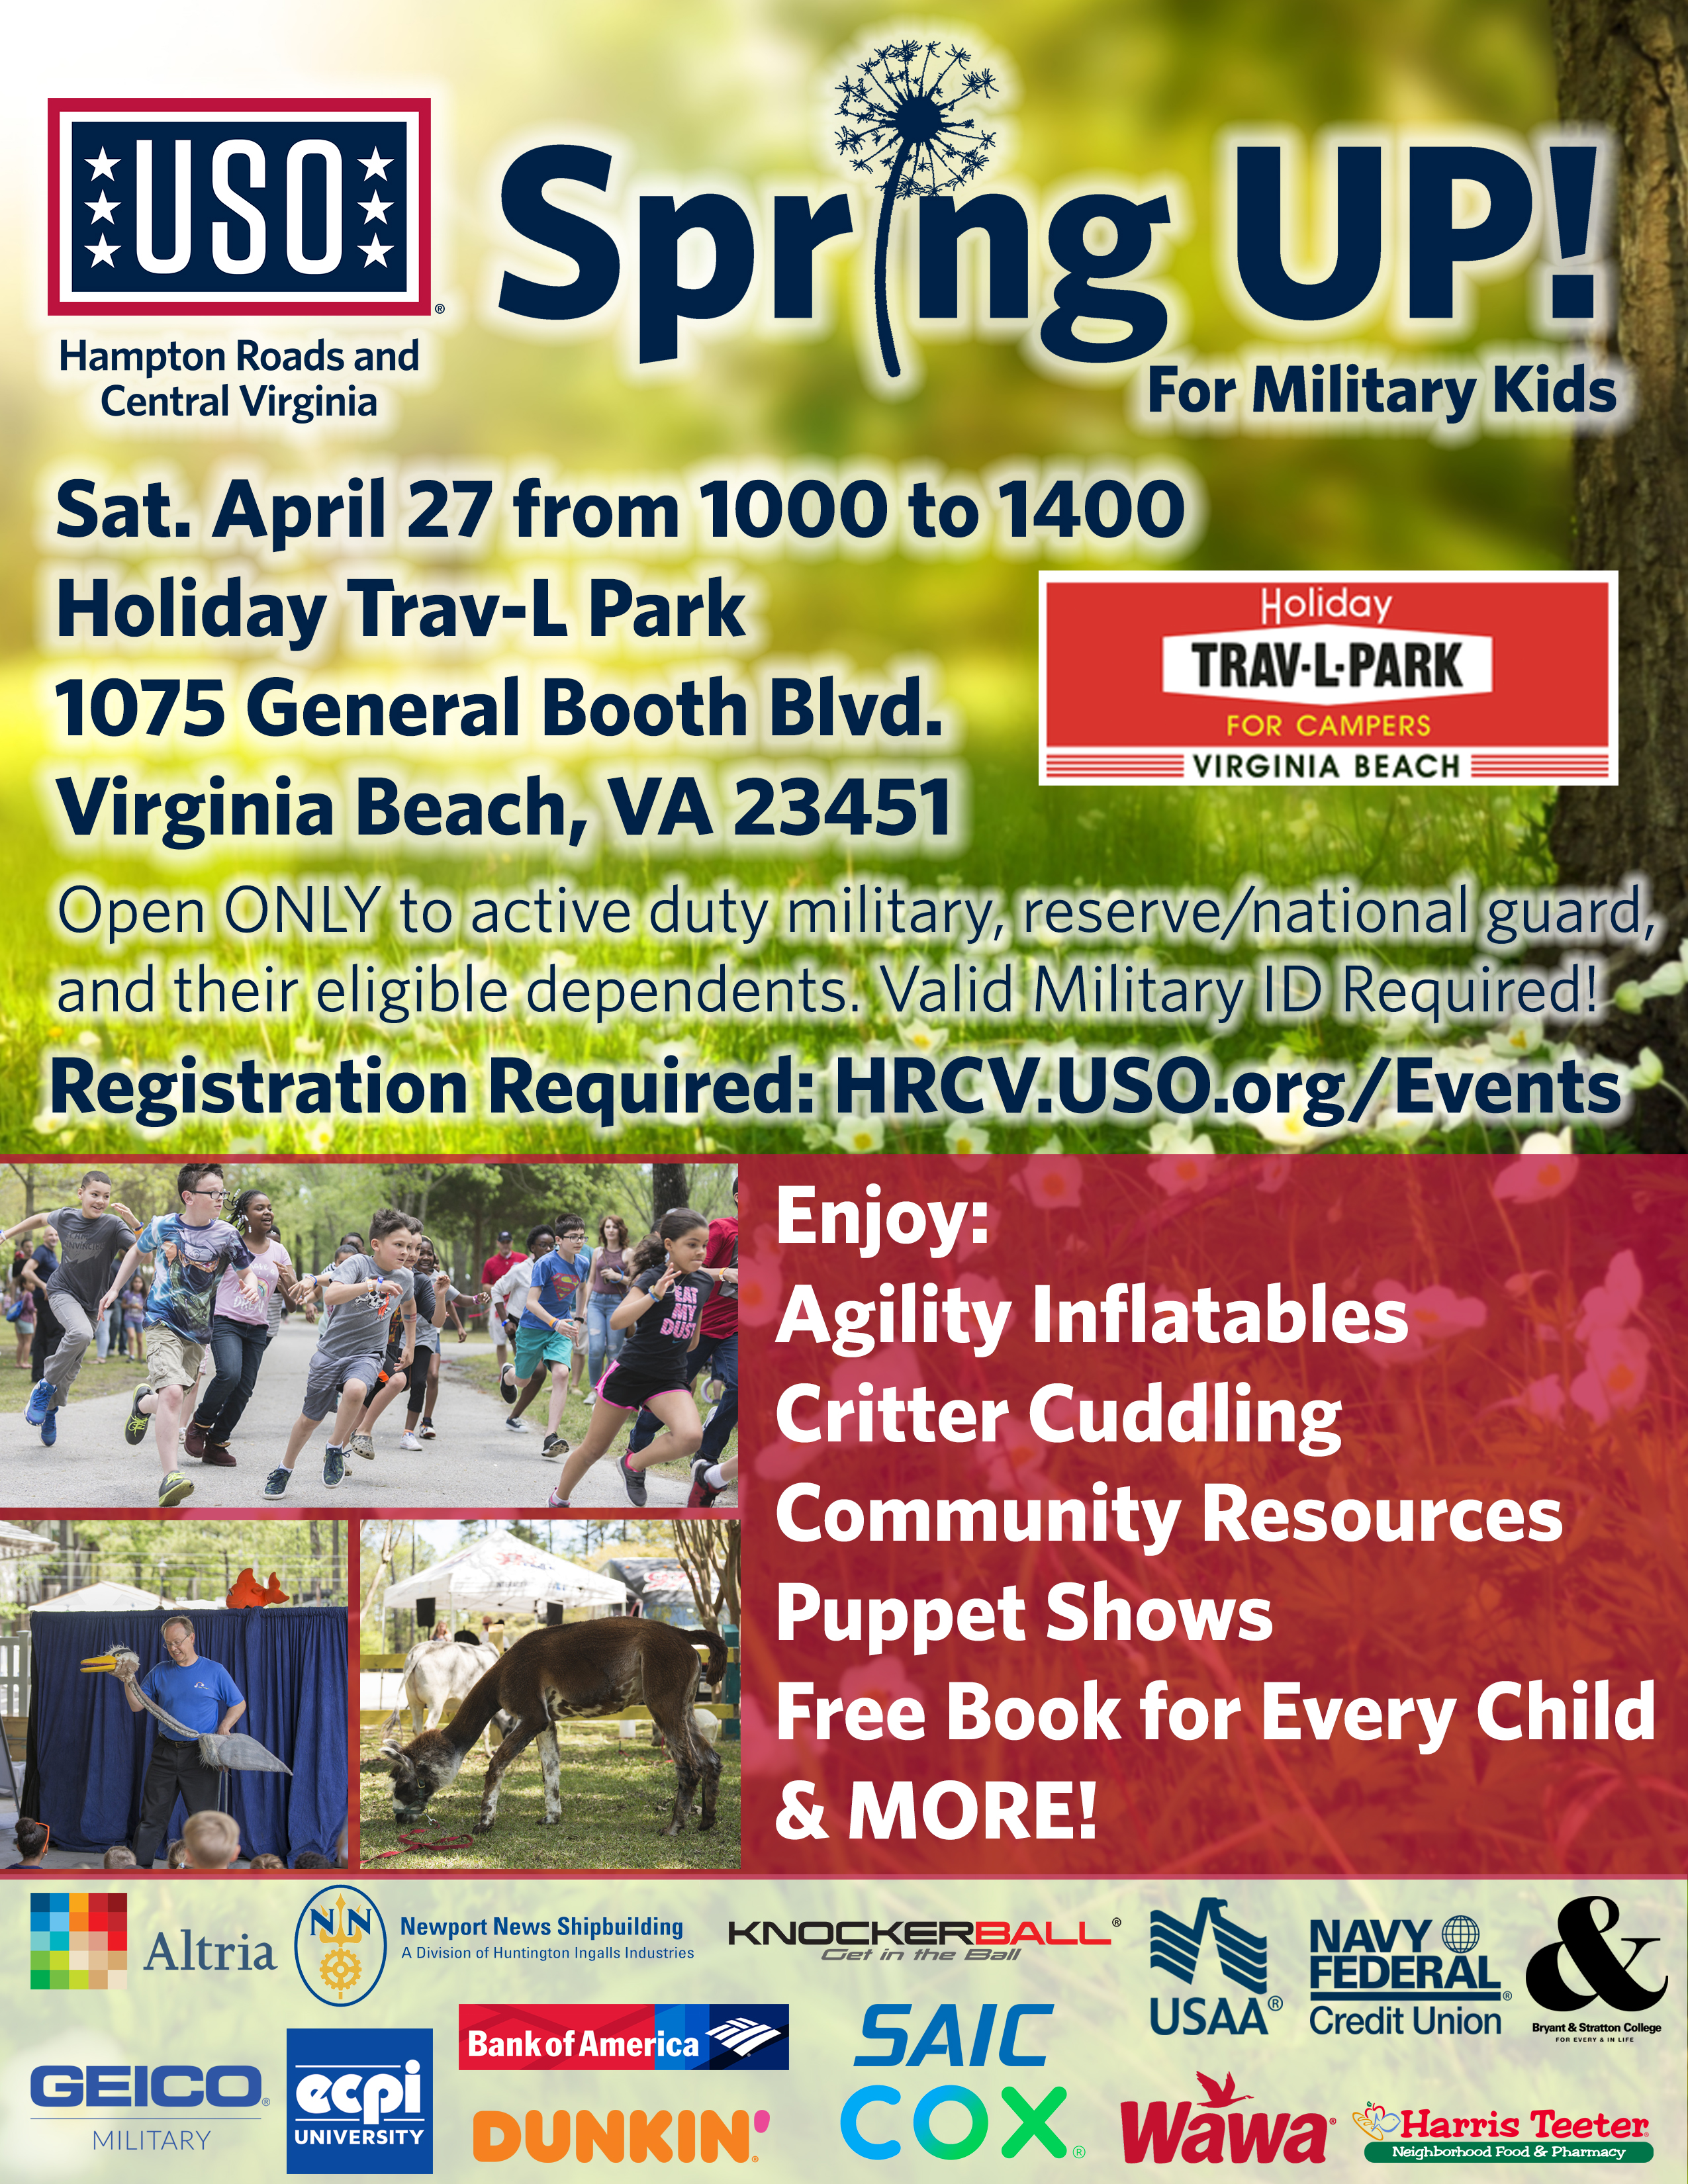 SpringUP! For Military Kids • USO of Hampton Roads and